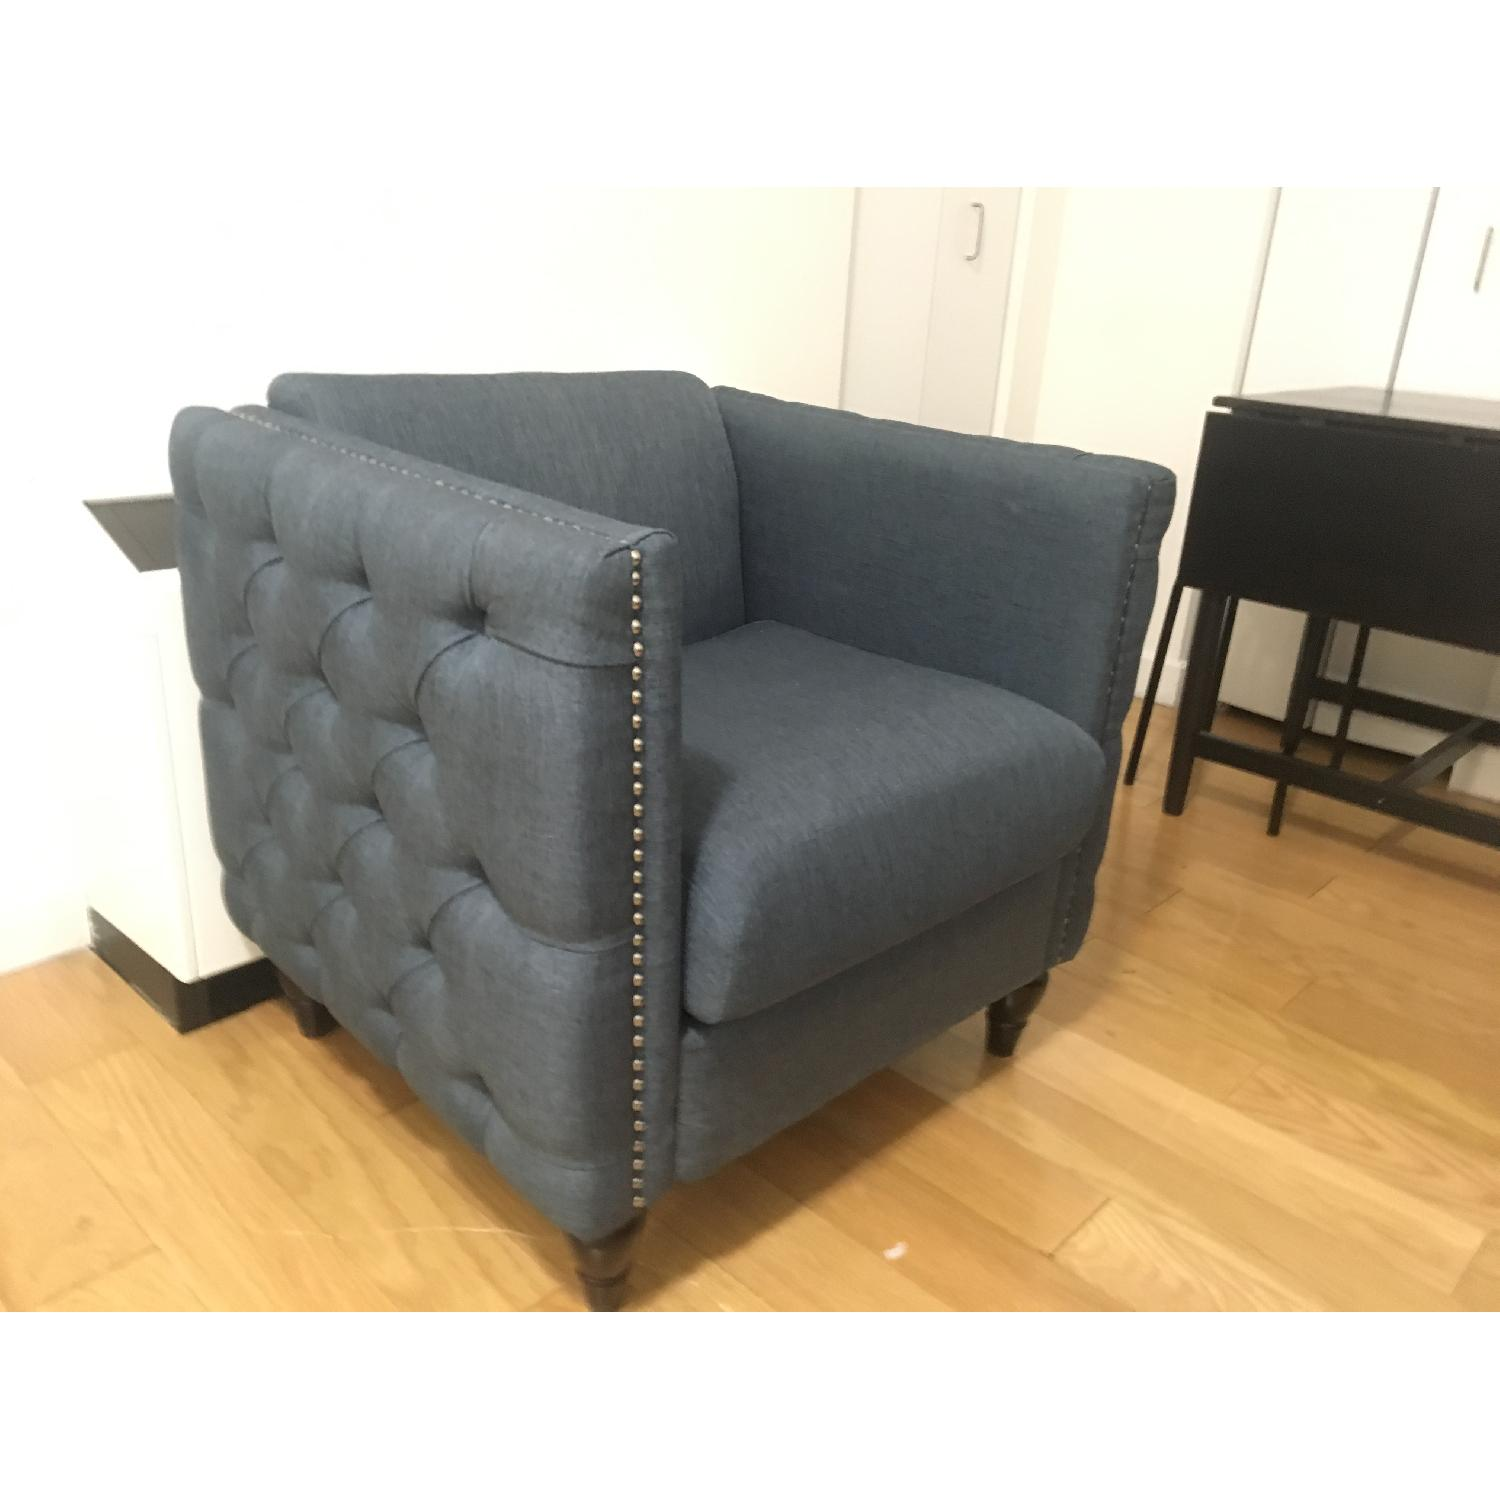 GDF Studio Tufted Gray/Blue Accent Chair-0